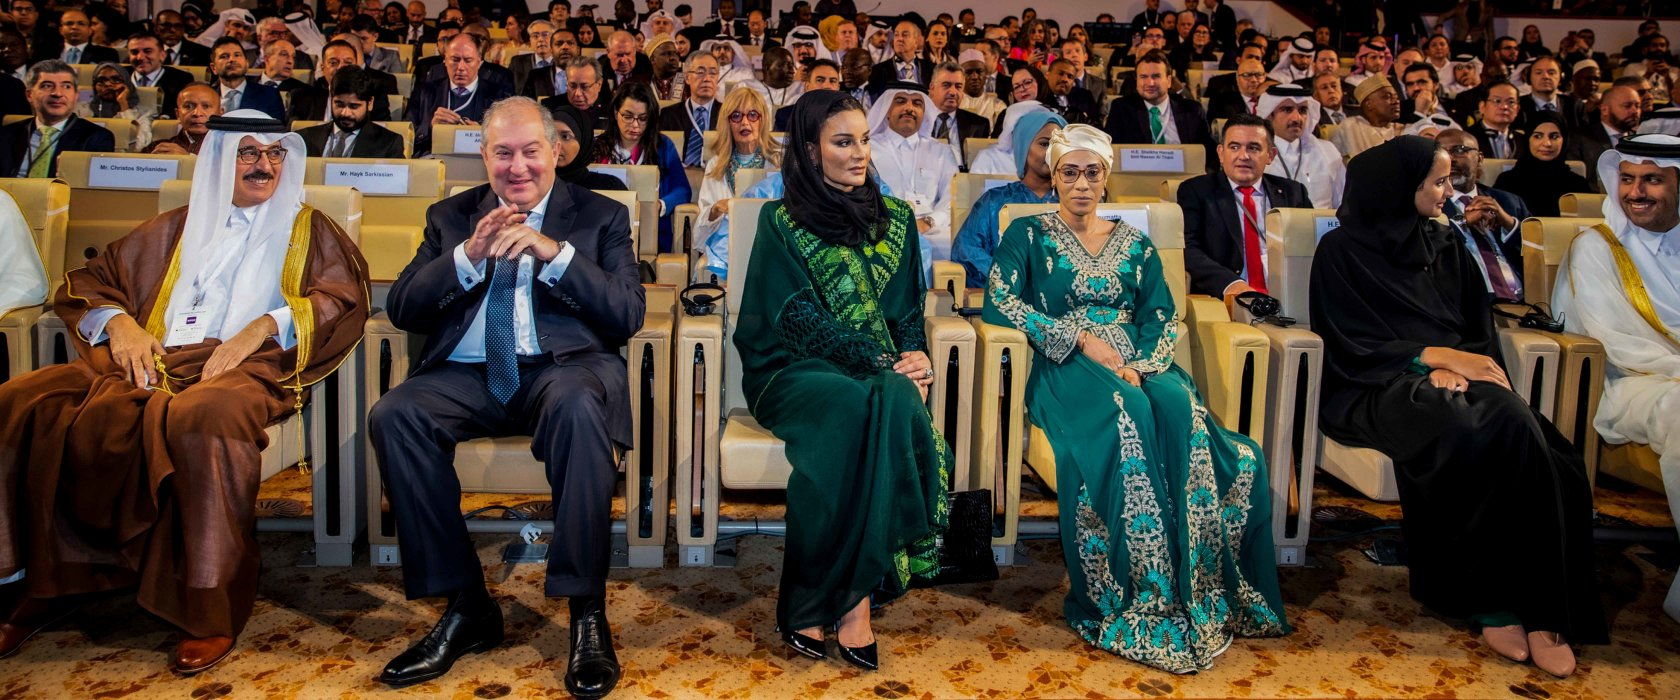 Her Highness Sheikha Moza bint Nasser attends WISE Summit 2019